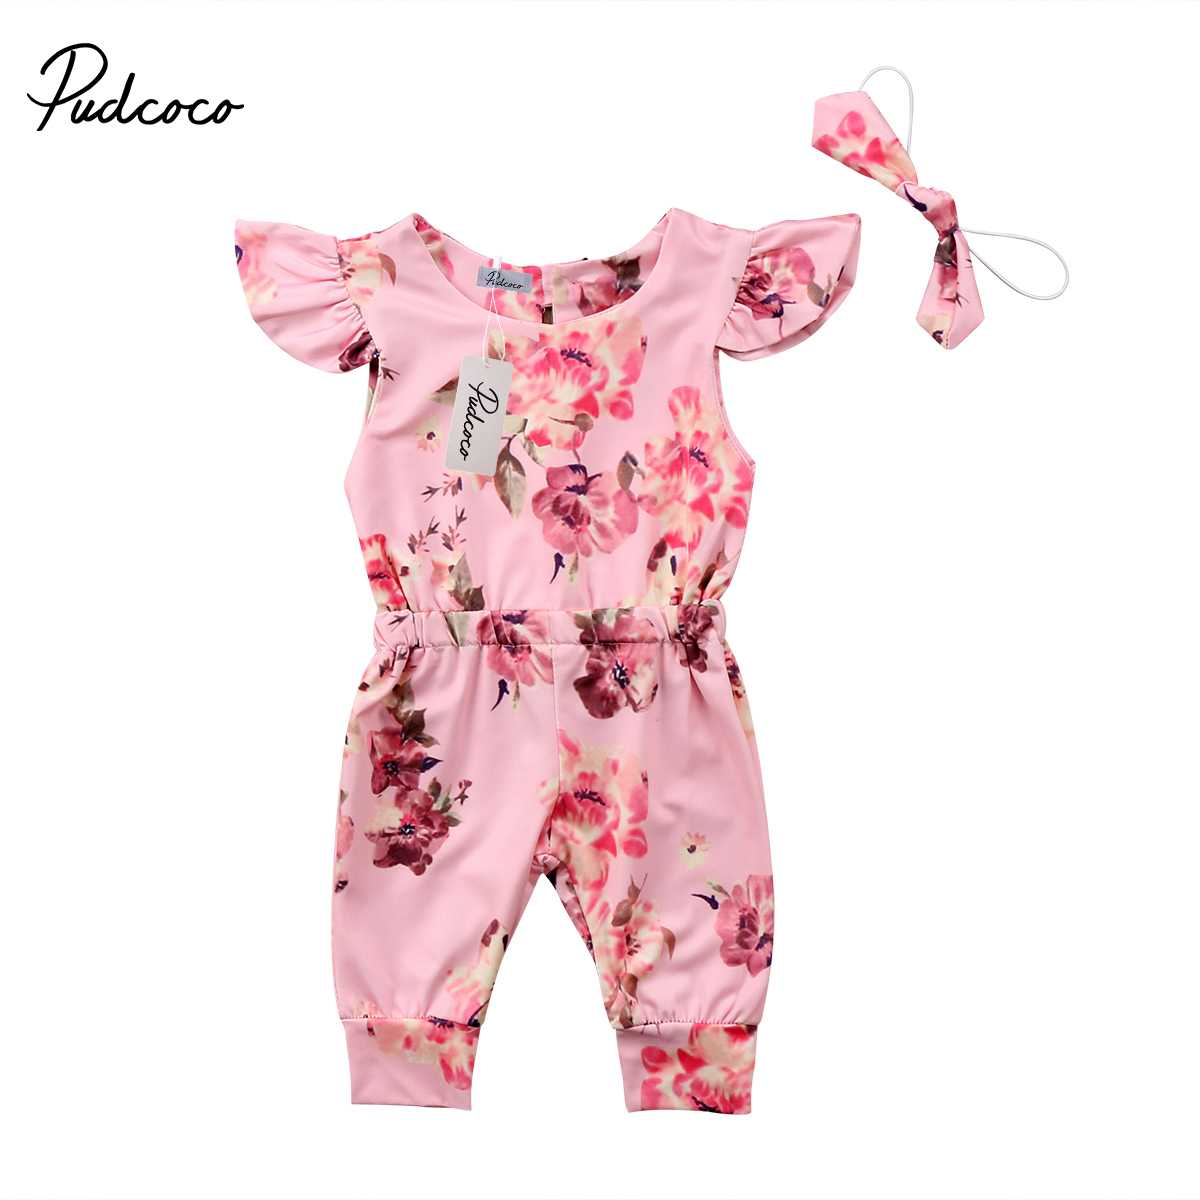 Pudcoco Toddler Infant Baby Girls Romper Floral Romper Sunsuit Summer Flying Sleeve Jumpsuit Cotton Clothes Outfit summer newborn infant baby girl romper short sleeve floral romper jumpsuit outfits sunsuit clothes